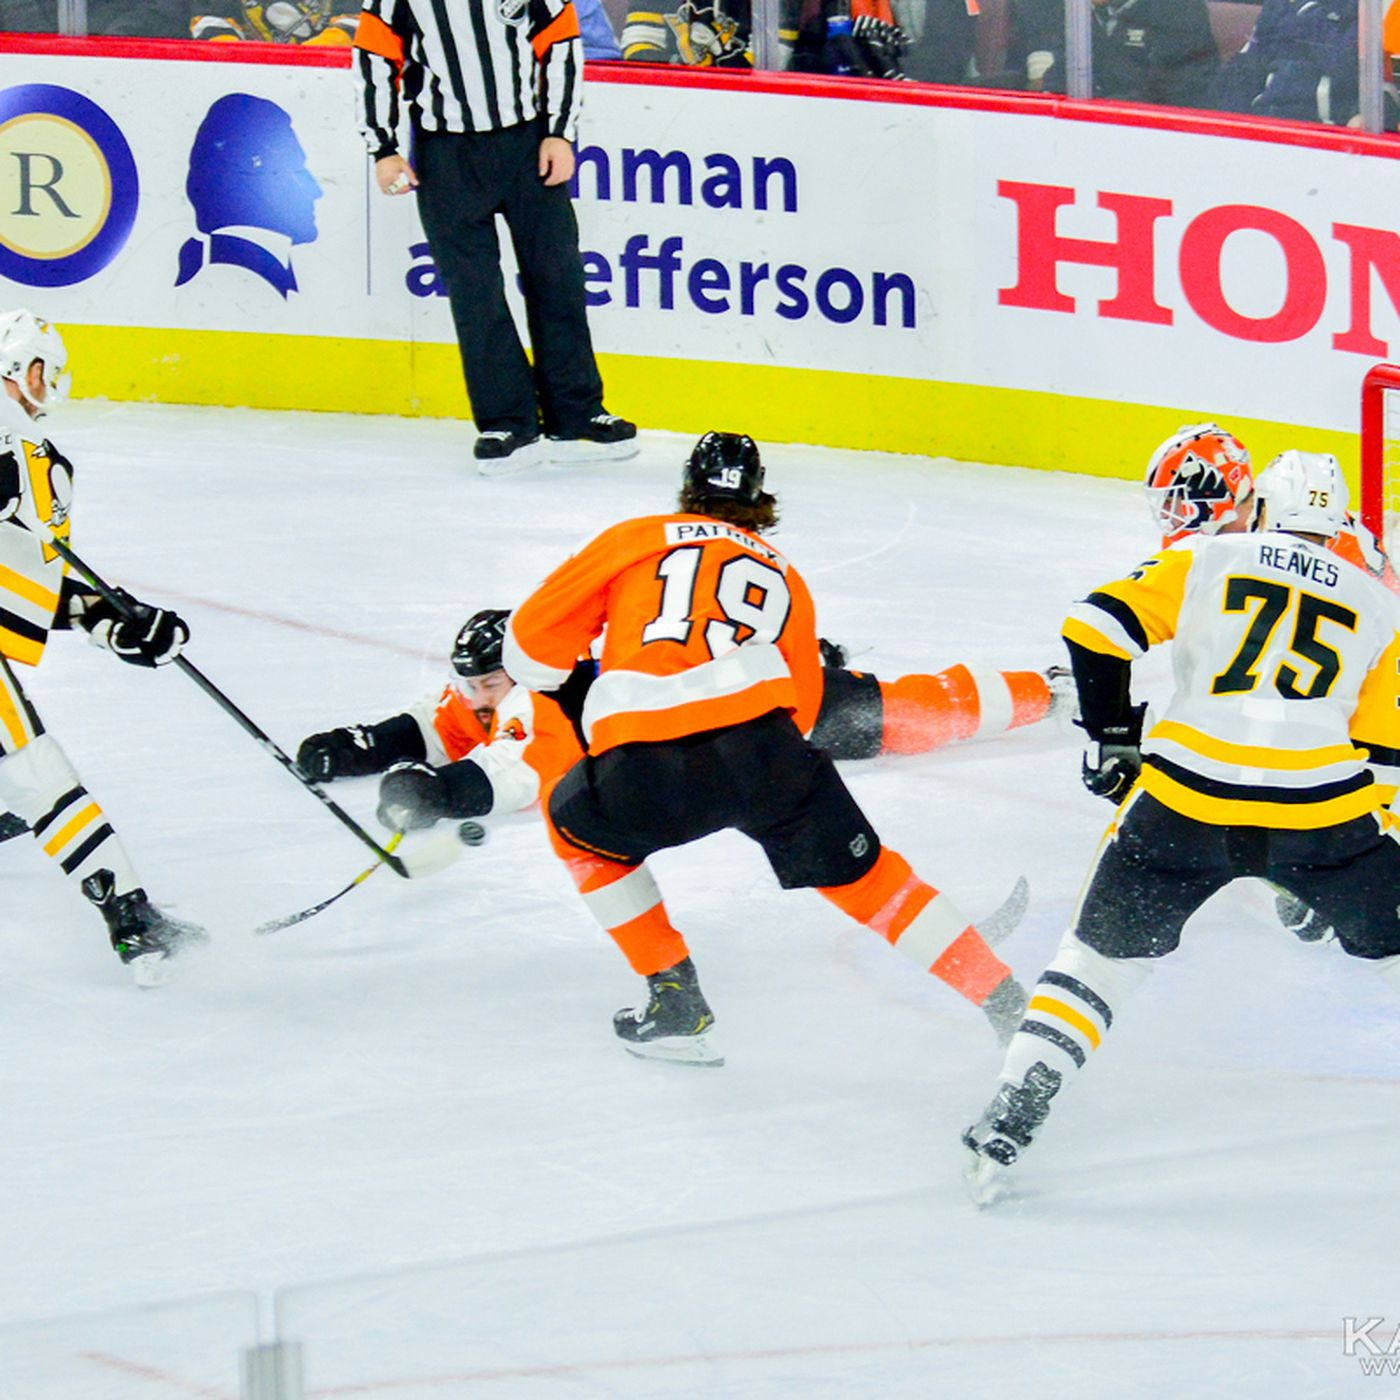 f648fbed Penguins 5, Flyers 1: 10 things we learned as the Flyers hold onto ...